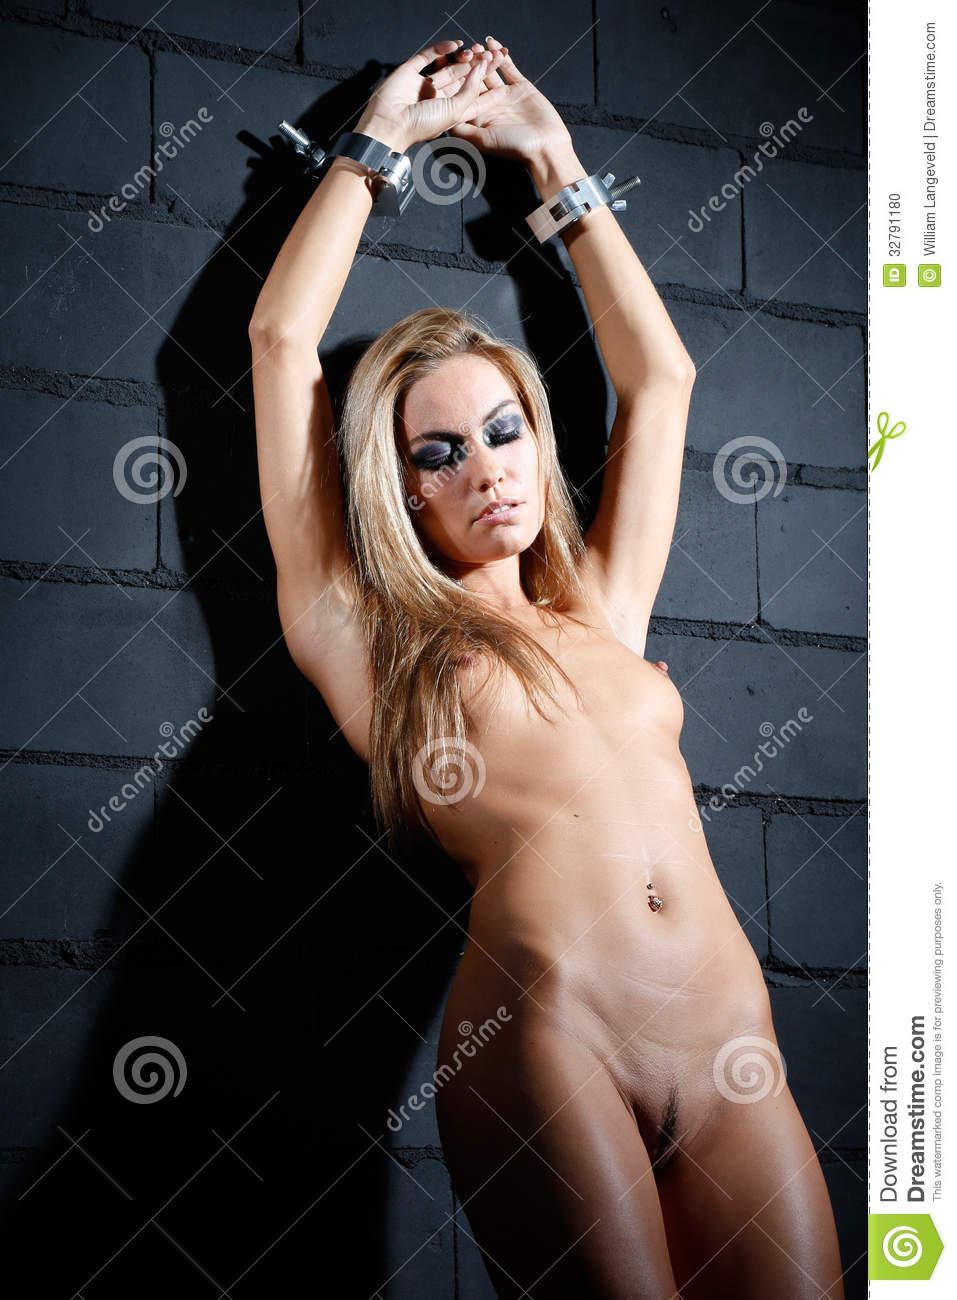 Bondage Style Naked Woman Stock Photo Image Of Prison -5838